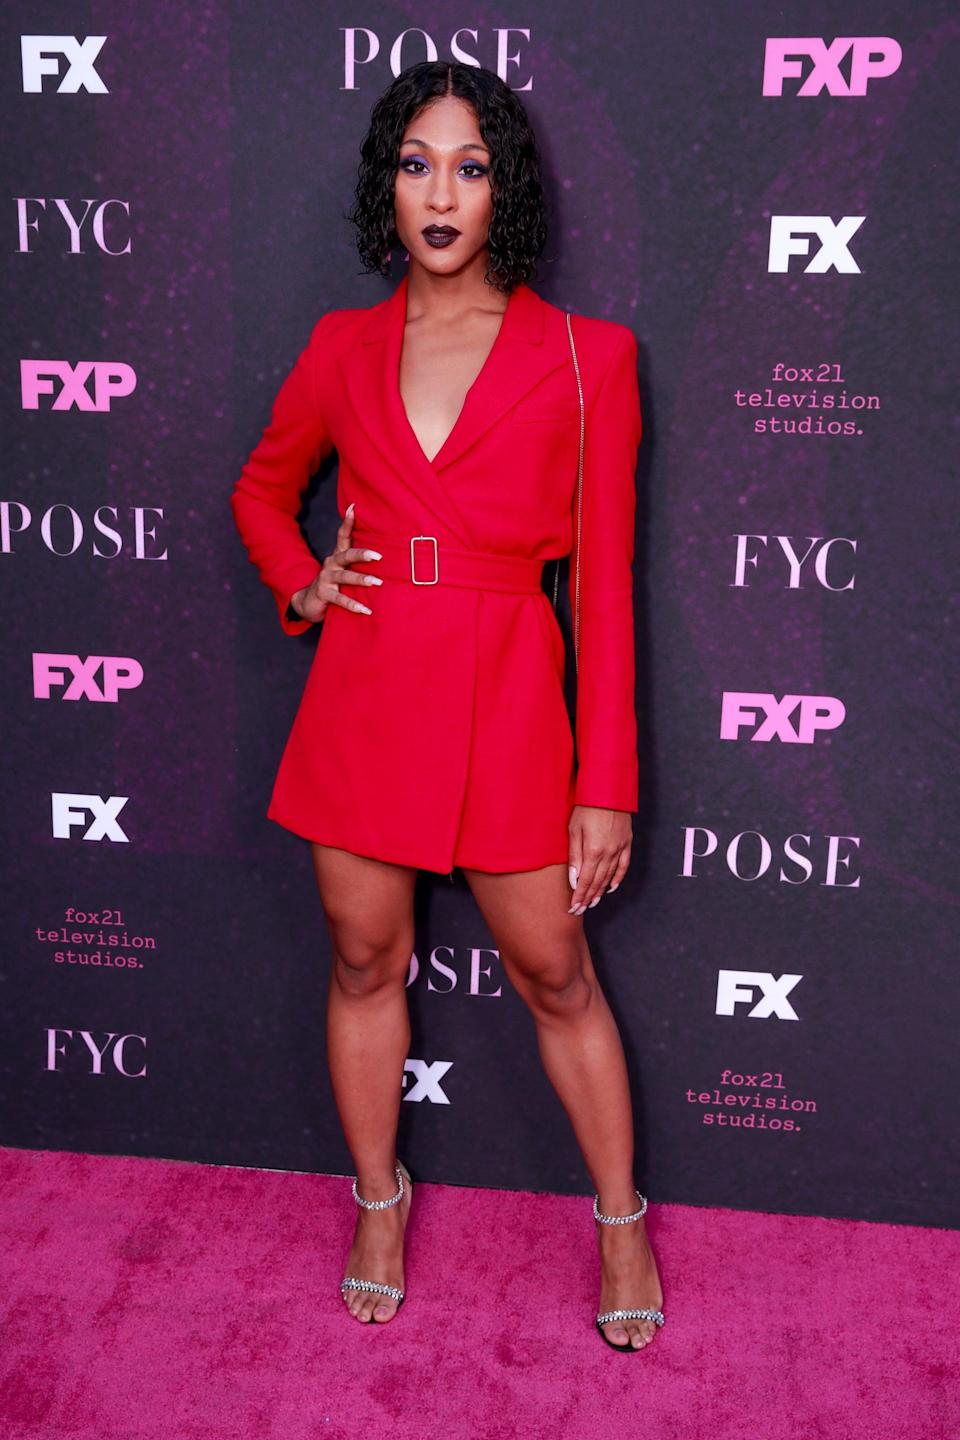 <p>It was all eyes on Mj at this 2019 red carpet event for <b>Pose</b> in West Hollywood, CA.</p>